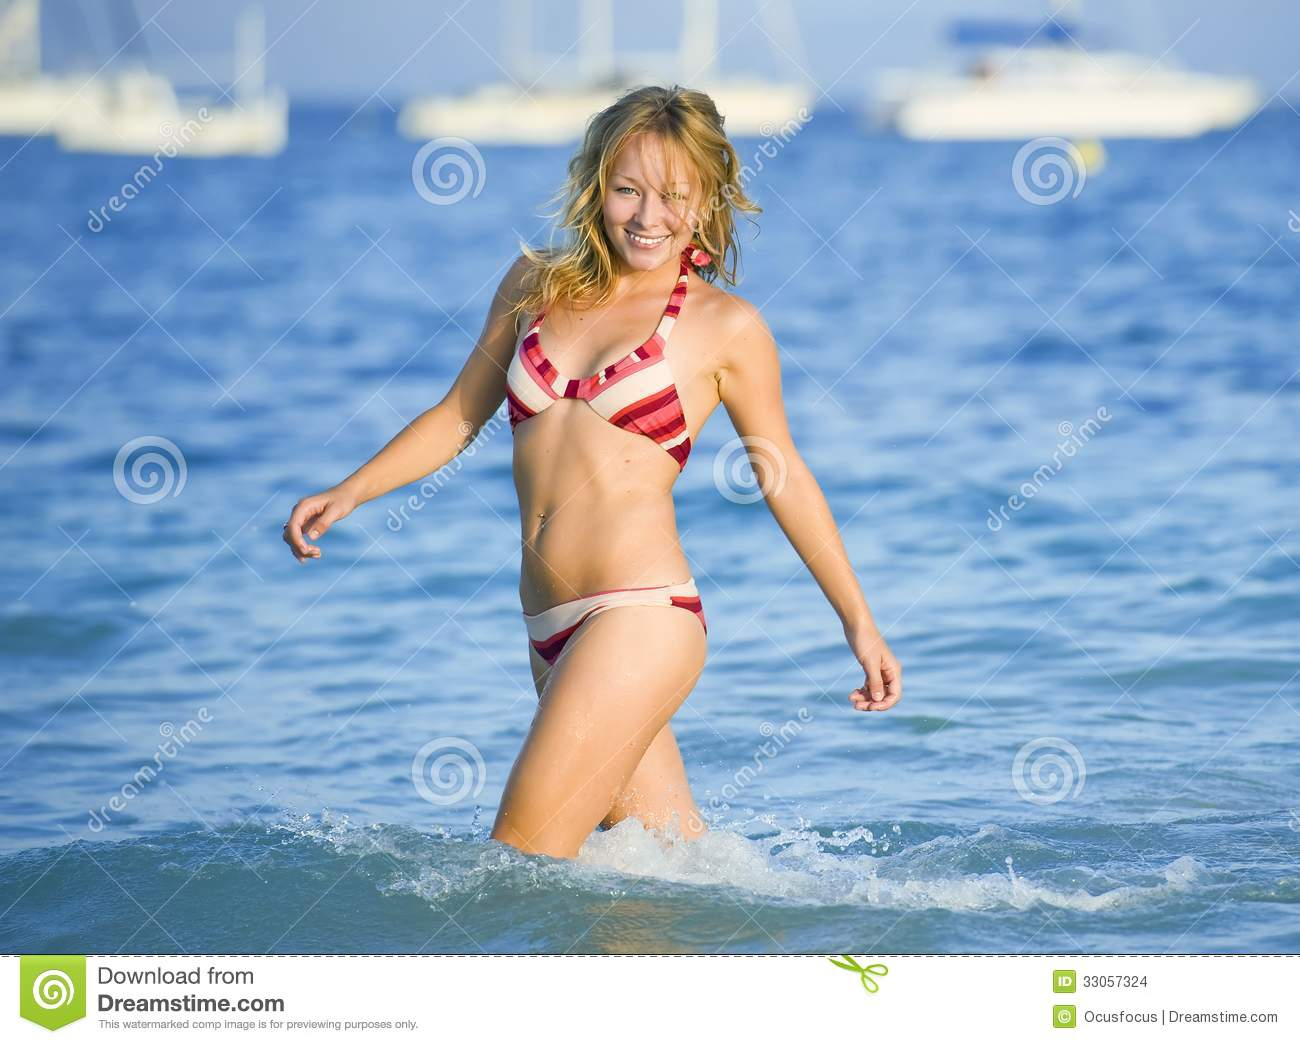 Young Blonde Woman at the Beach